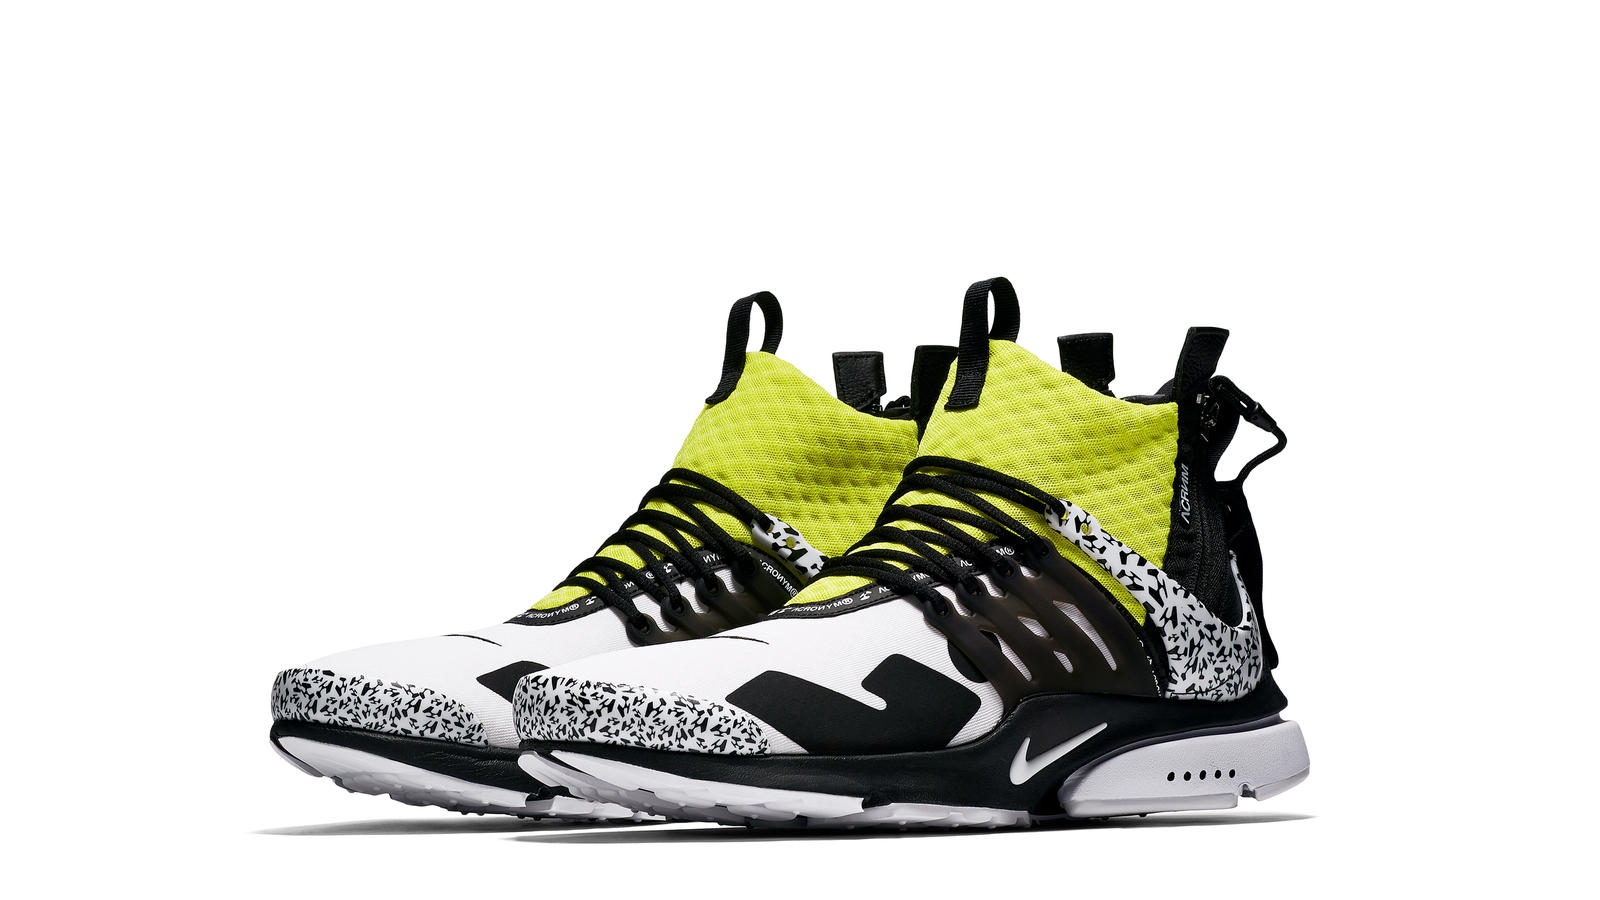 low priced e0f43 38228 Acronym x Nike Air Presto Mid 19